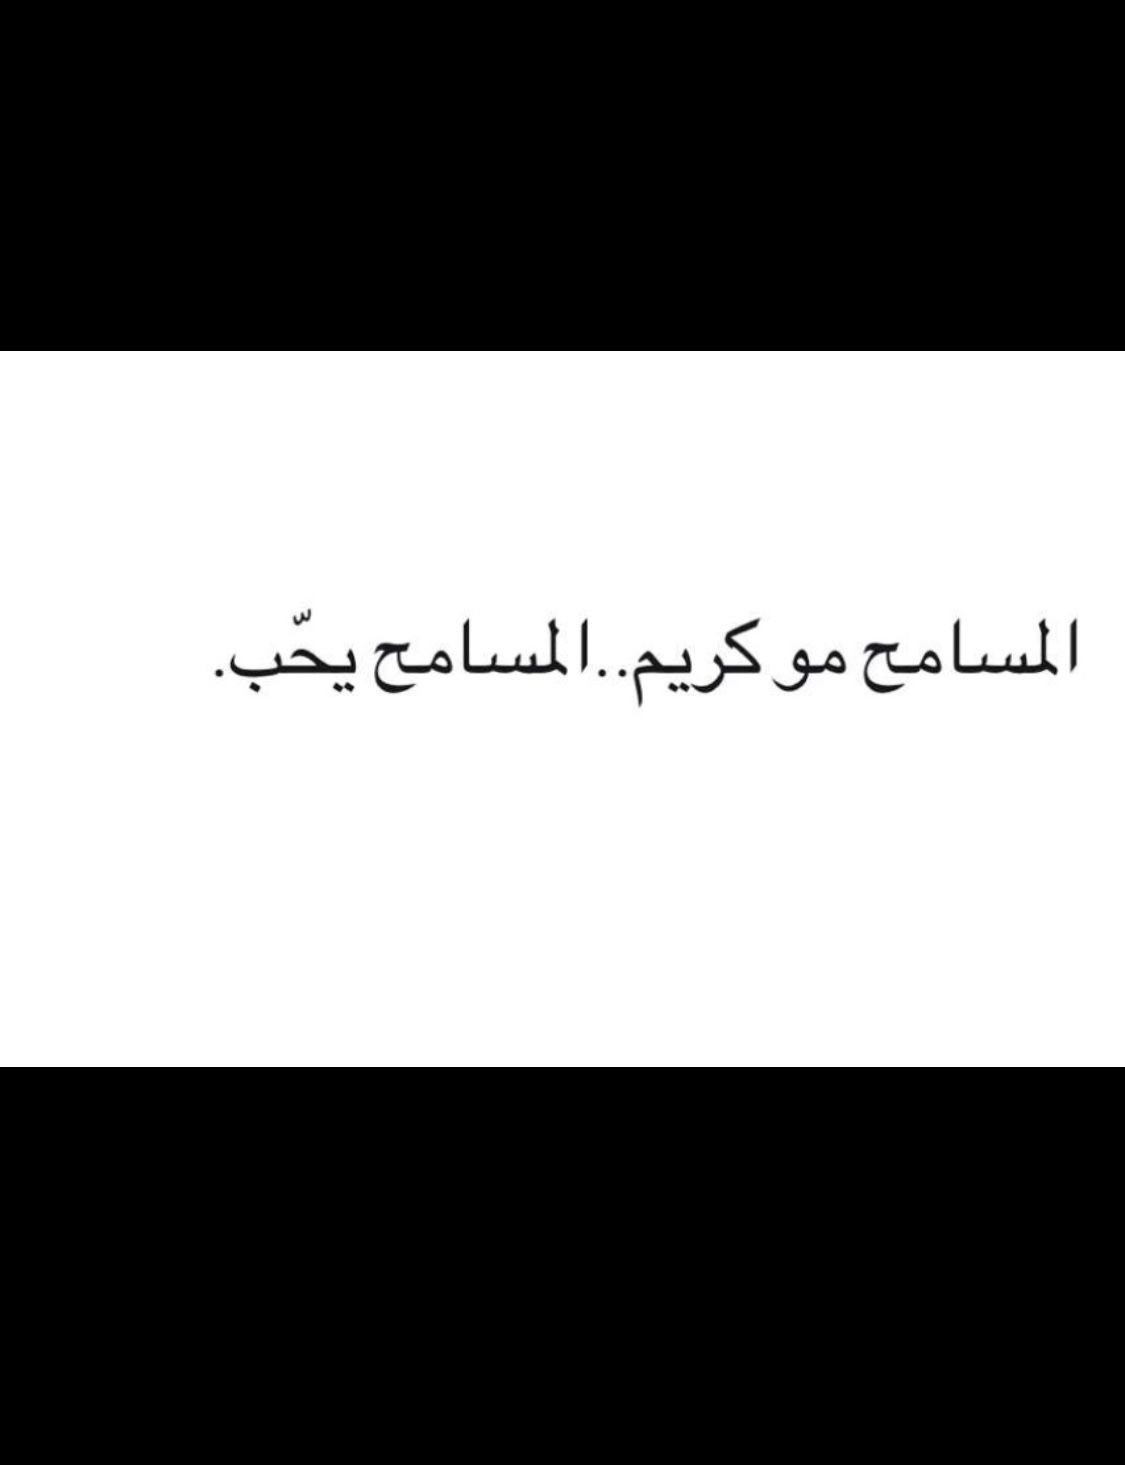 Pin By سارهـ On أنا Life Quotes Words Arabic Quotes